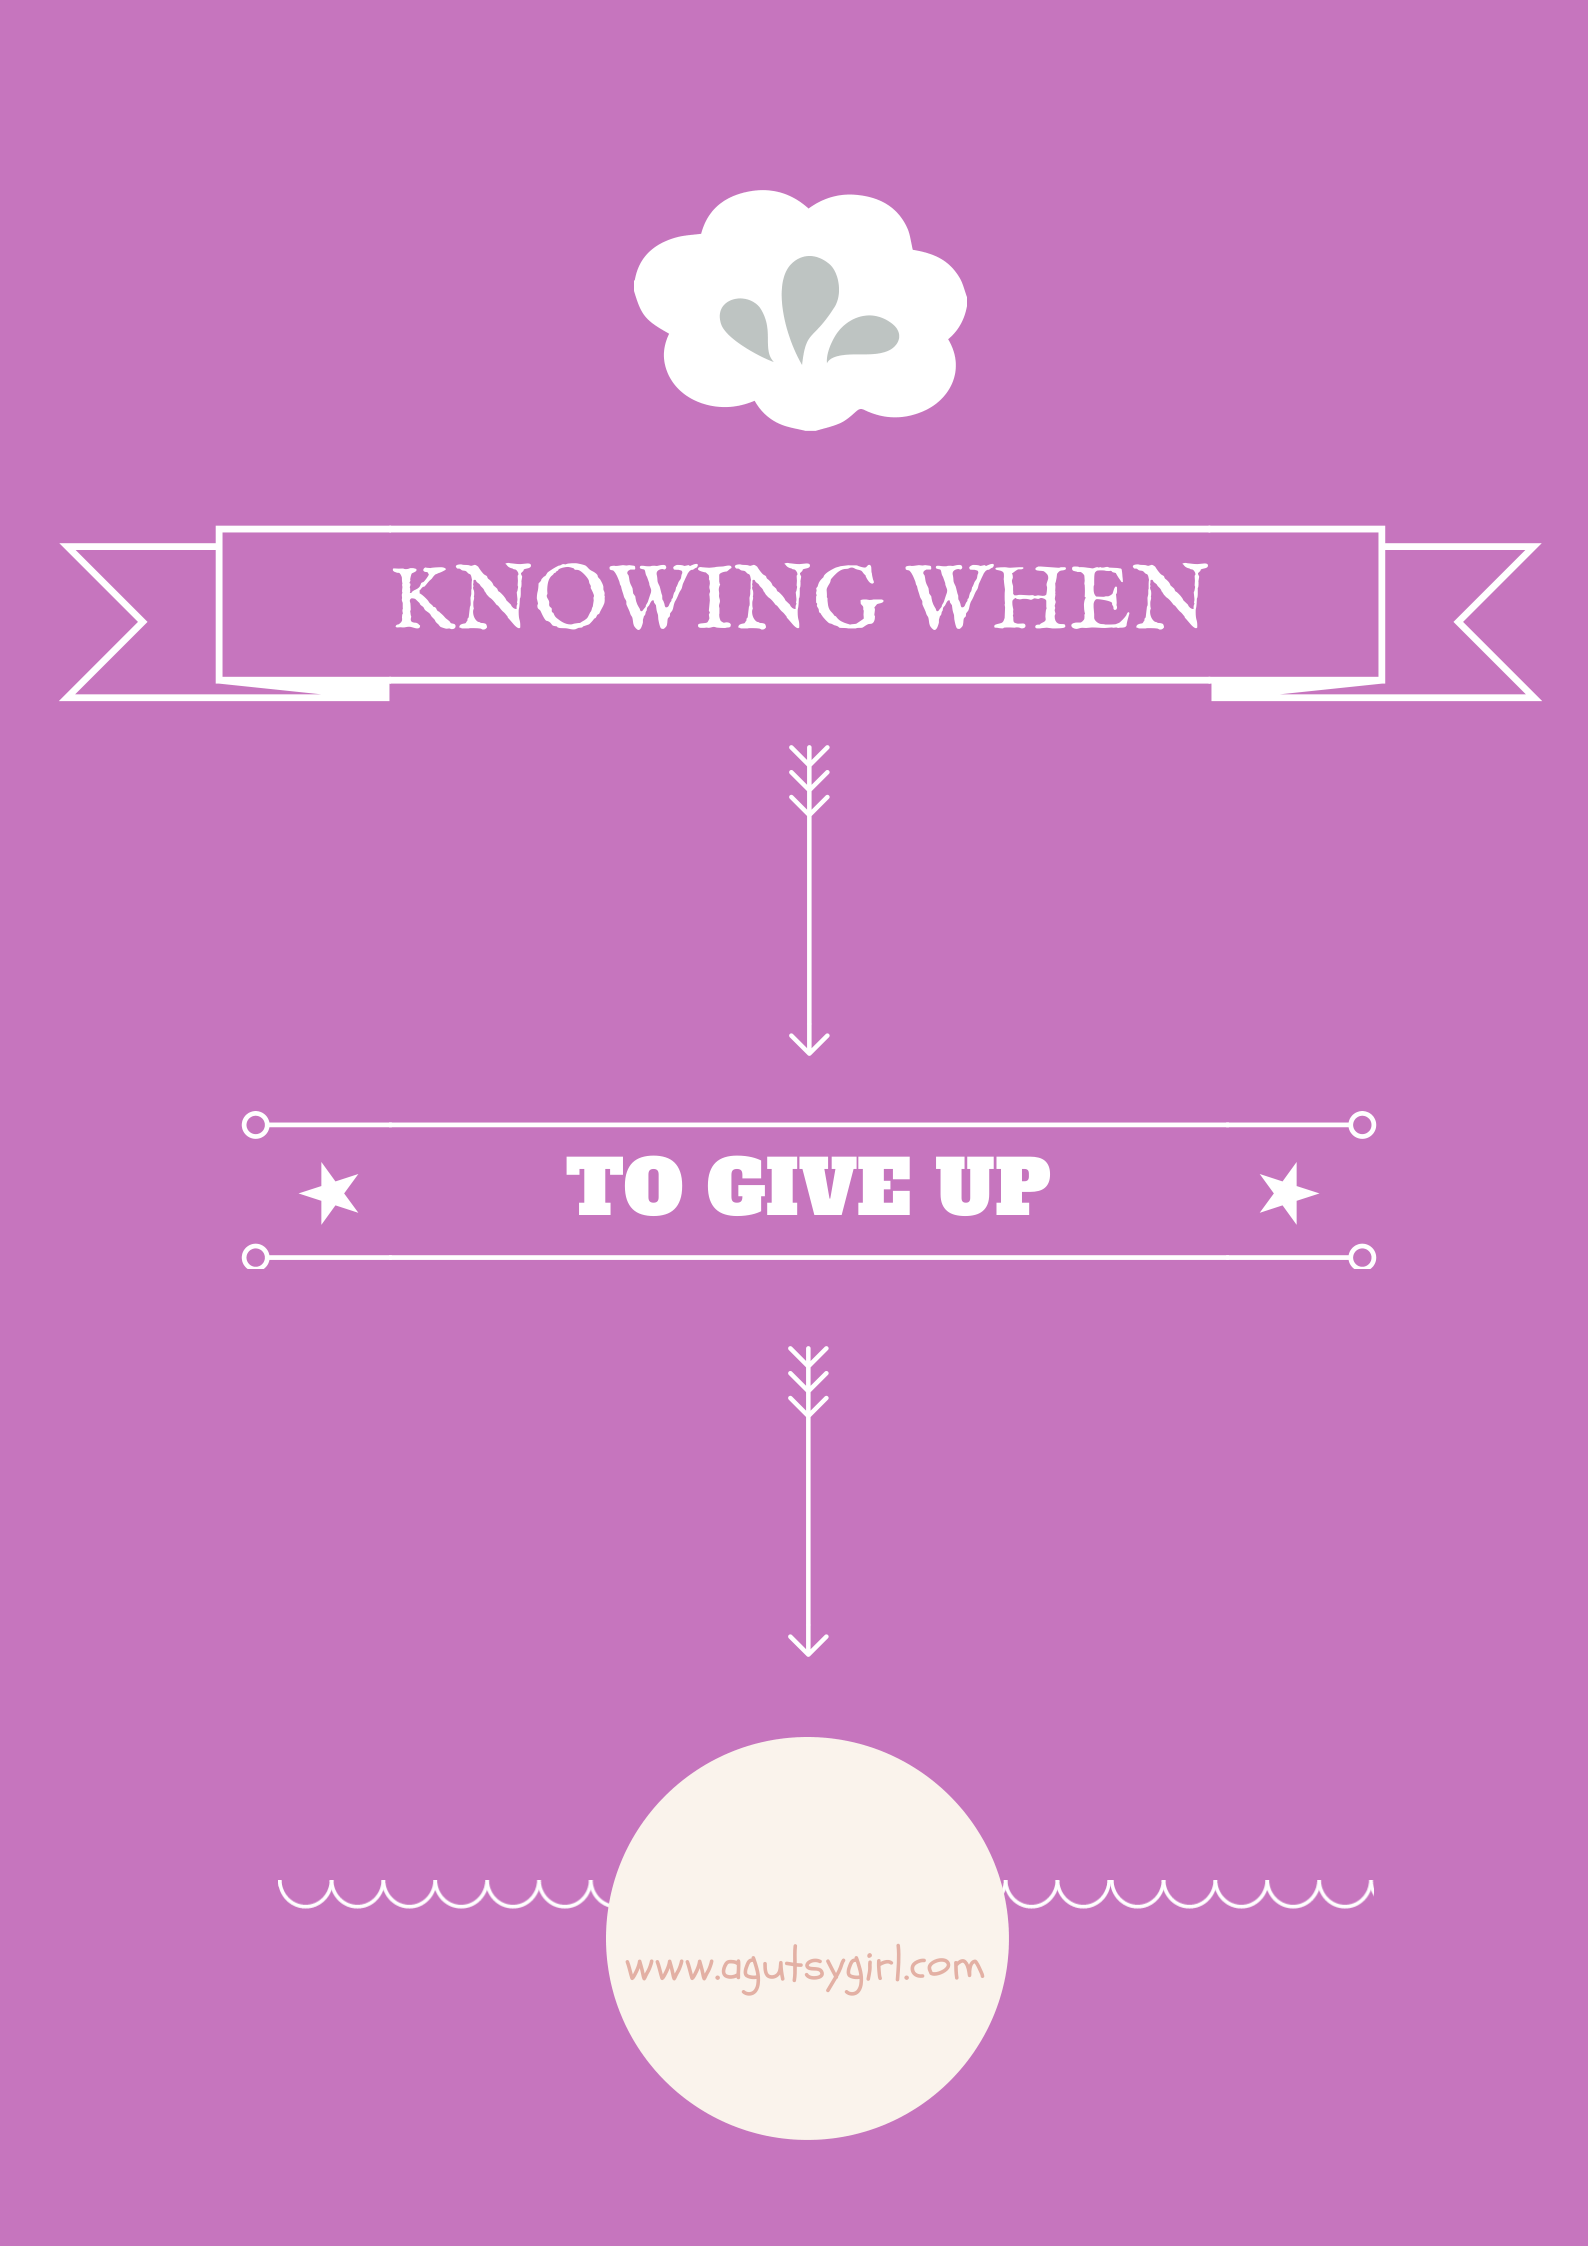 Knowing When to Give Up via www.agutsygirl.com #running #workouts #ibs #ibd